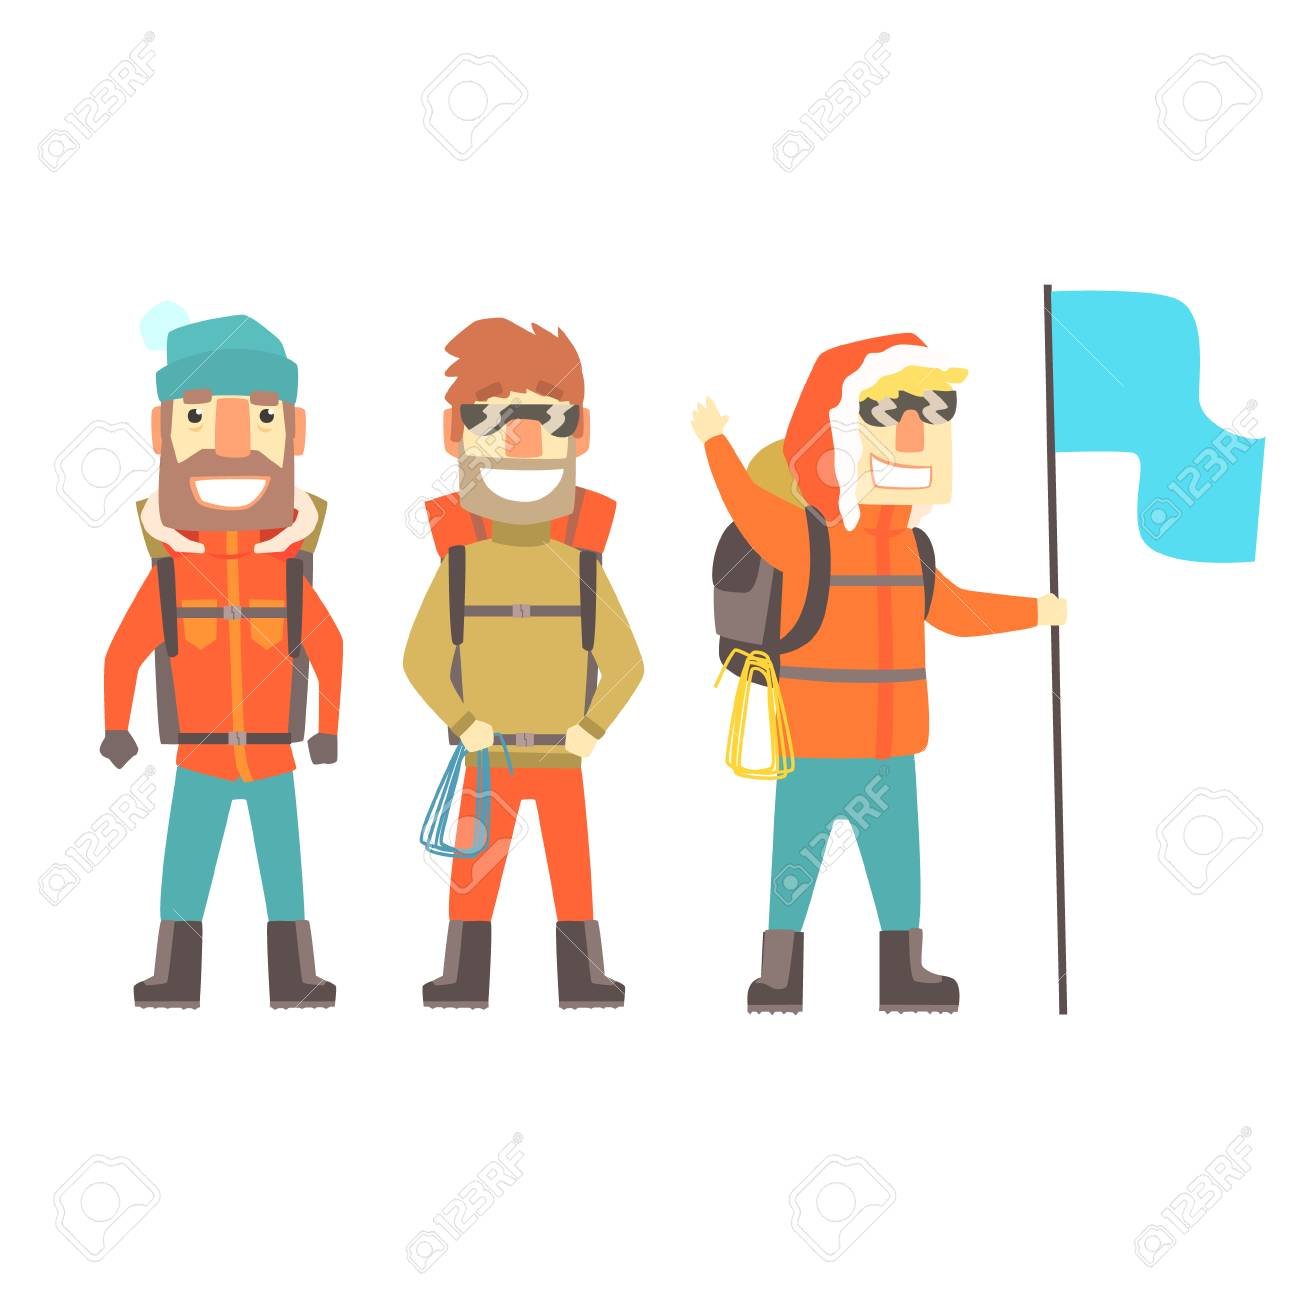 Three mountain climbers with mountain climbing equipment, colorful characters vector Illustration isolated on a white background - 79584996